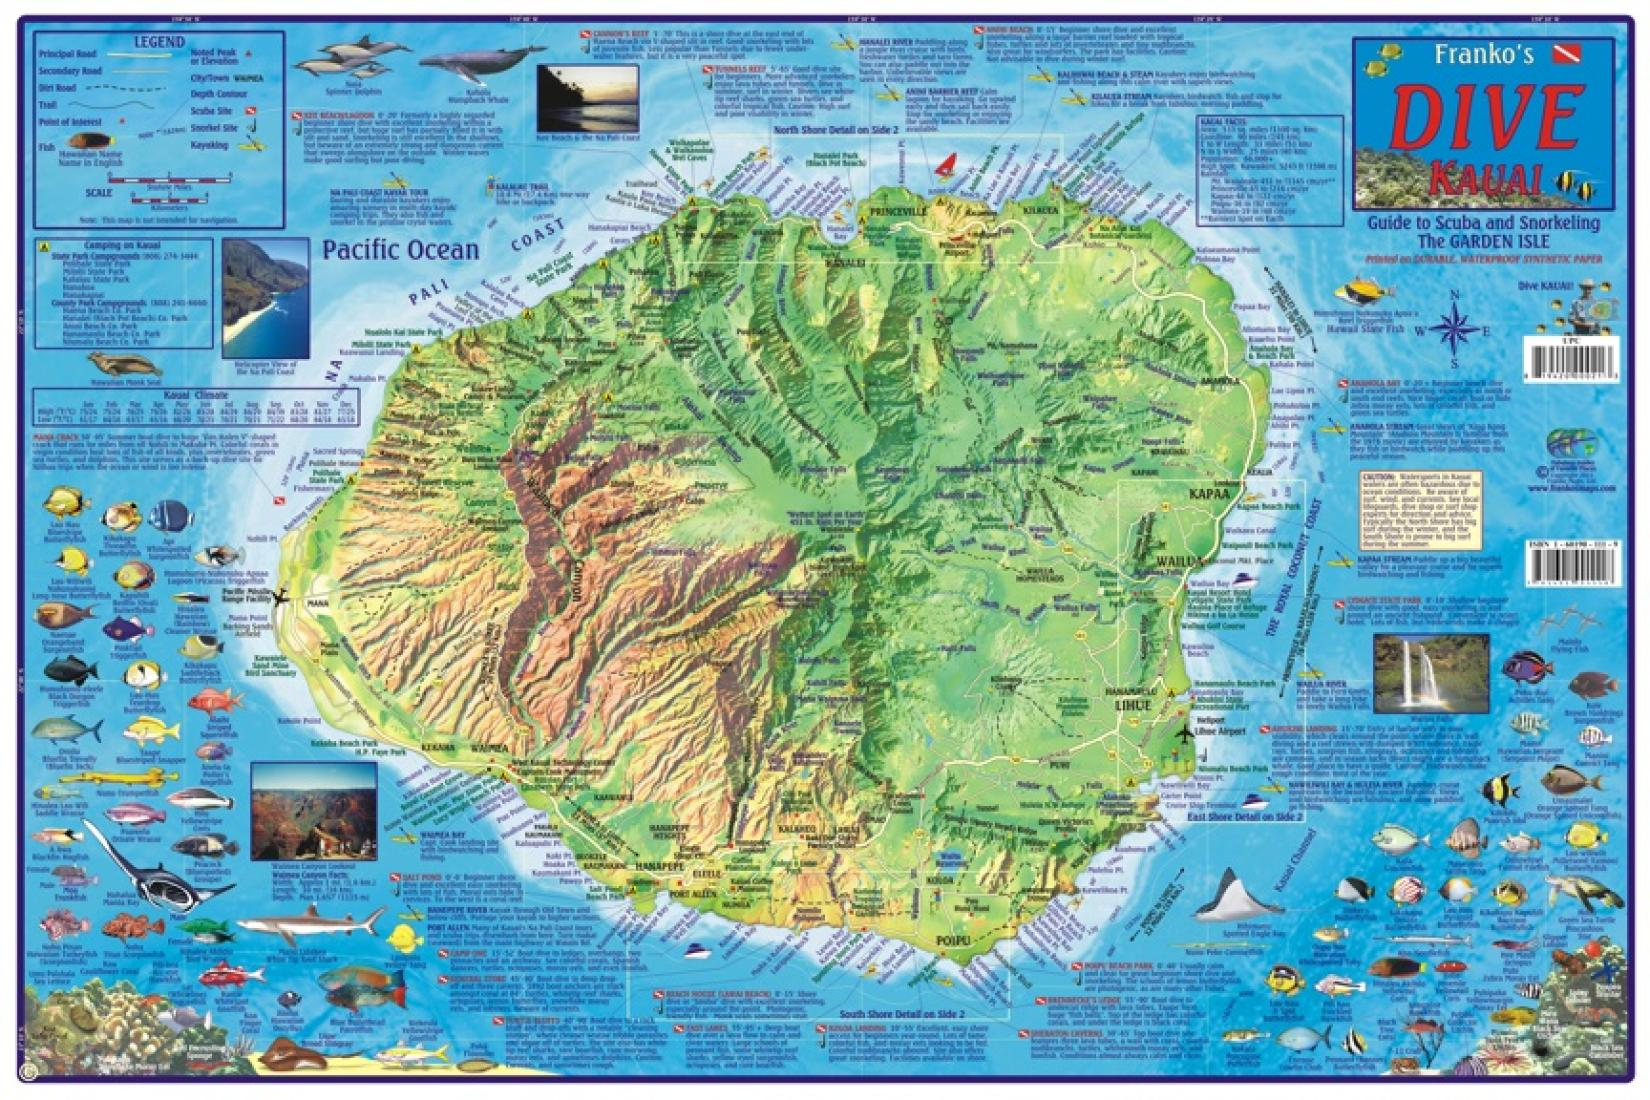 hawaii map kauai dive map laminated  by frankos maps ltd. map kauai dive map laminated  by frankos maps ltd